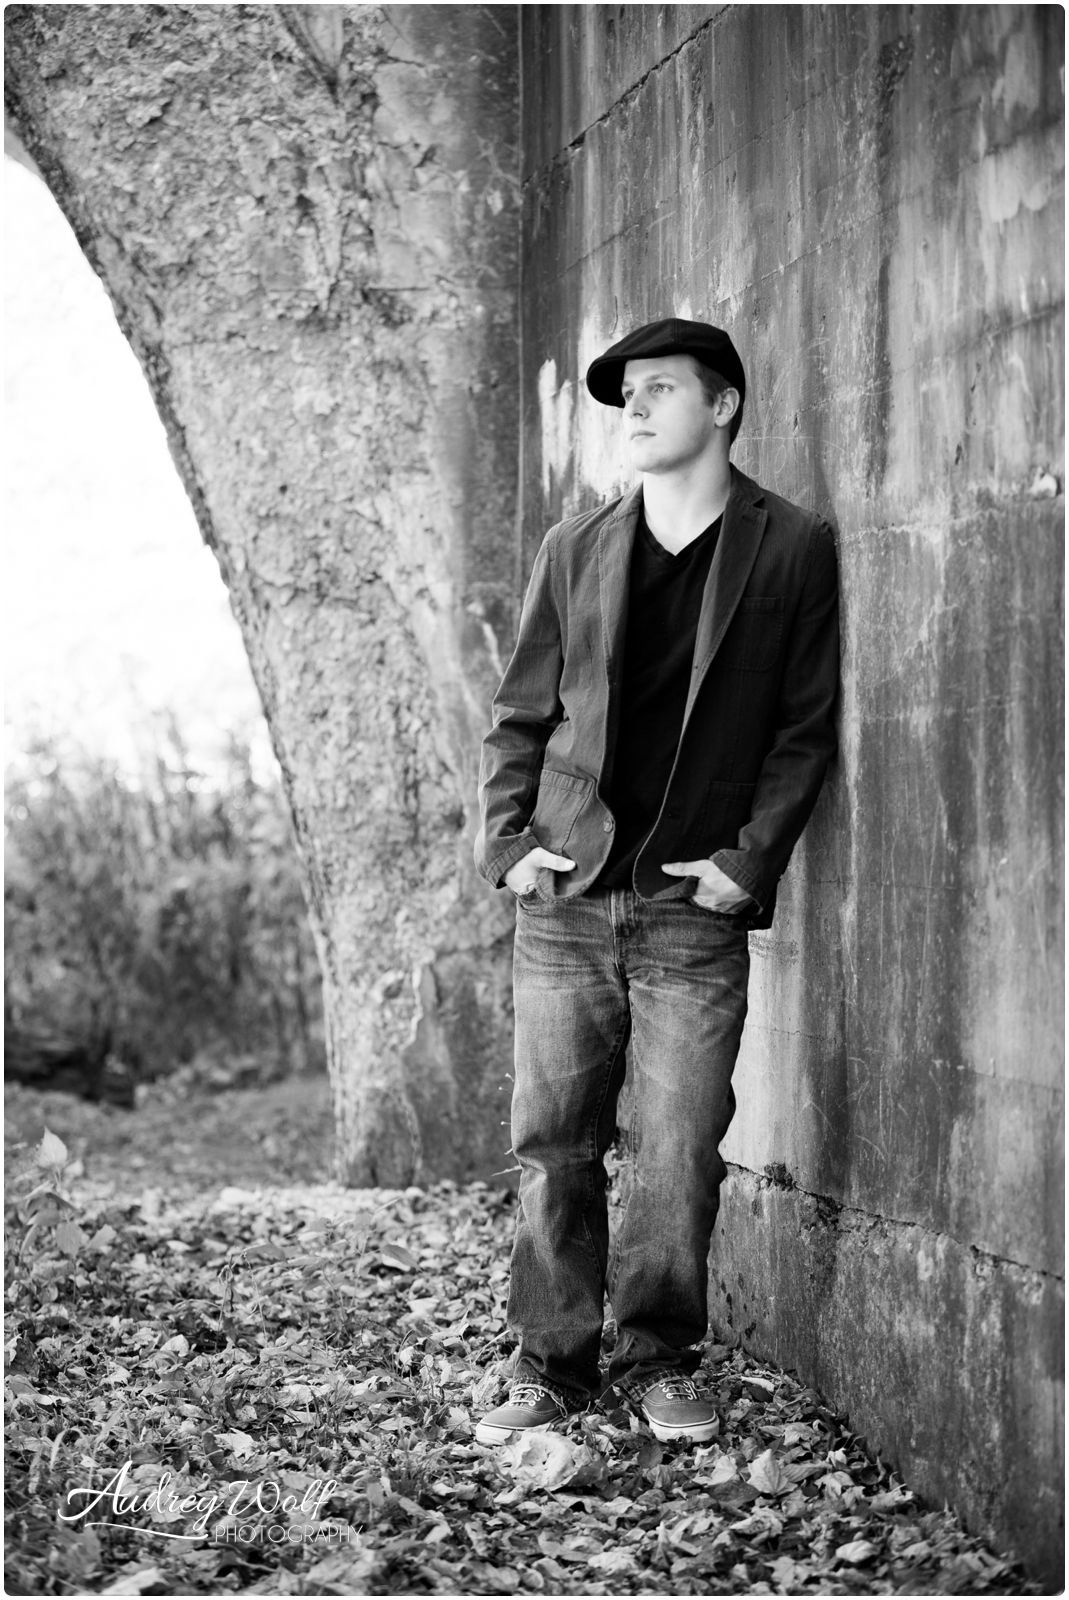 senior guy pose i love. | photo project ideas | pinterest | guy